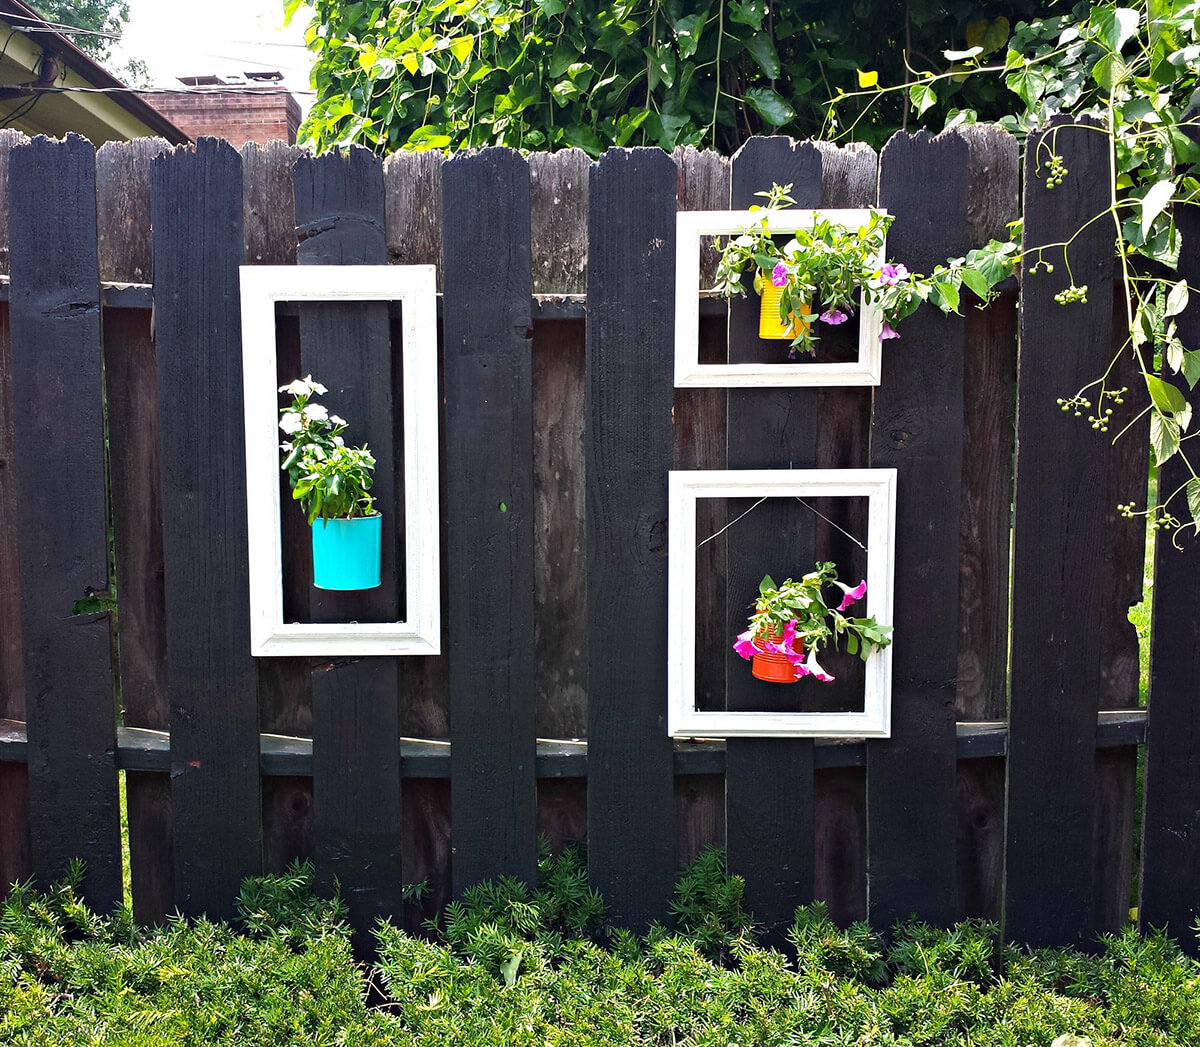 1. Hang Flowers in Upcycled Wooden Frames & 31 Best Garden Fence Decoration Ideas and Designs for 2018